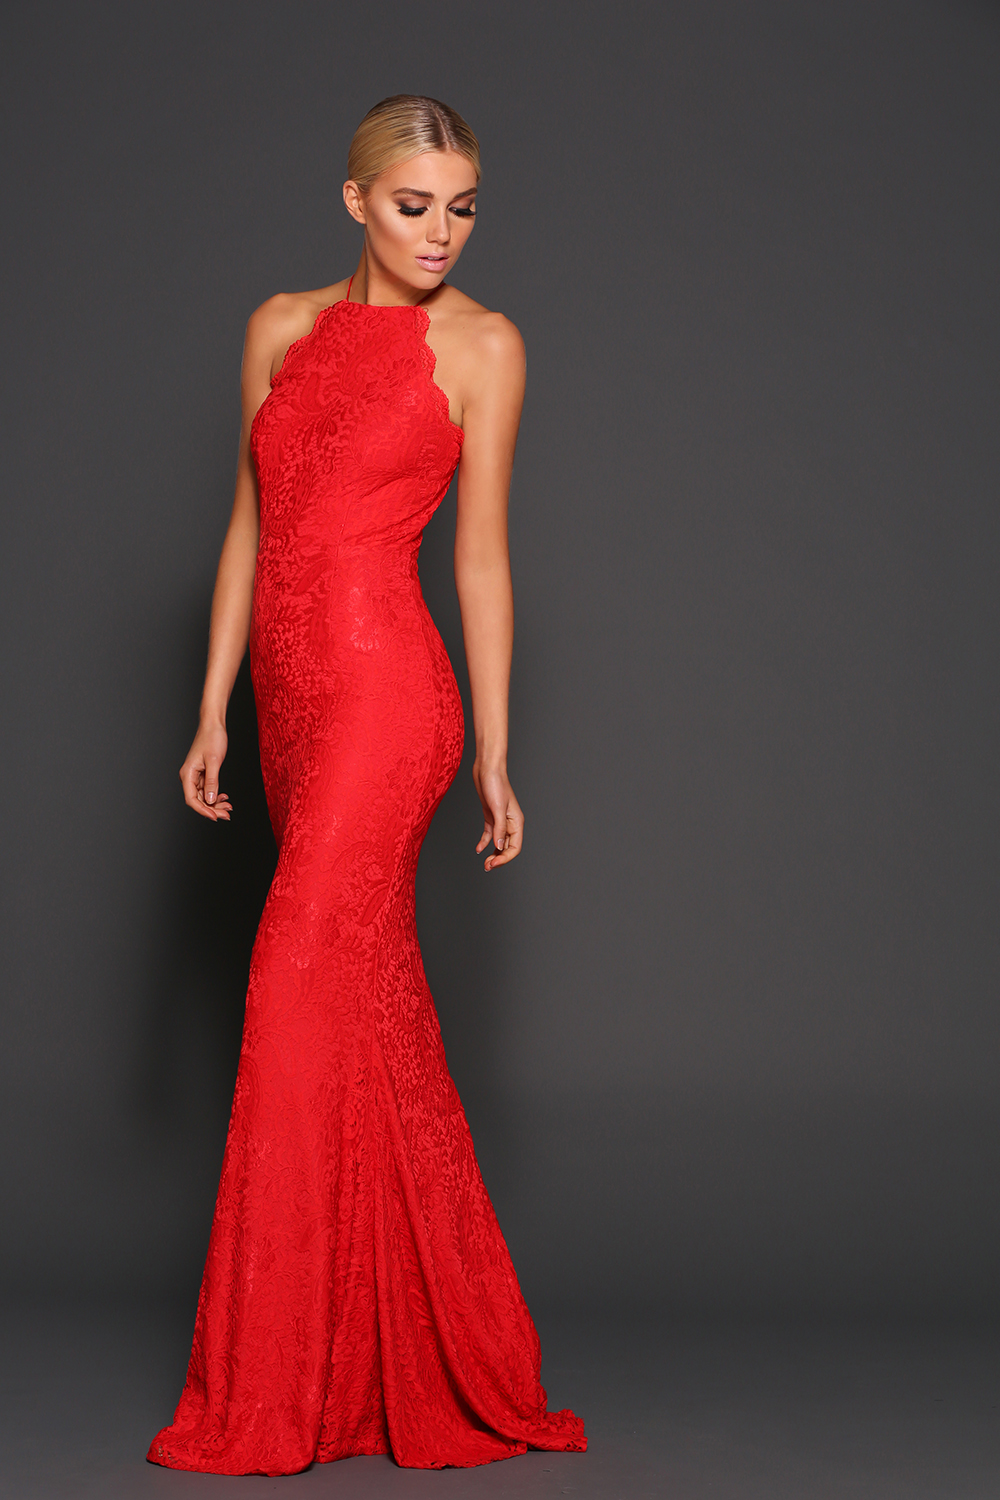 Red Formal Dresses affordable – wodip.com